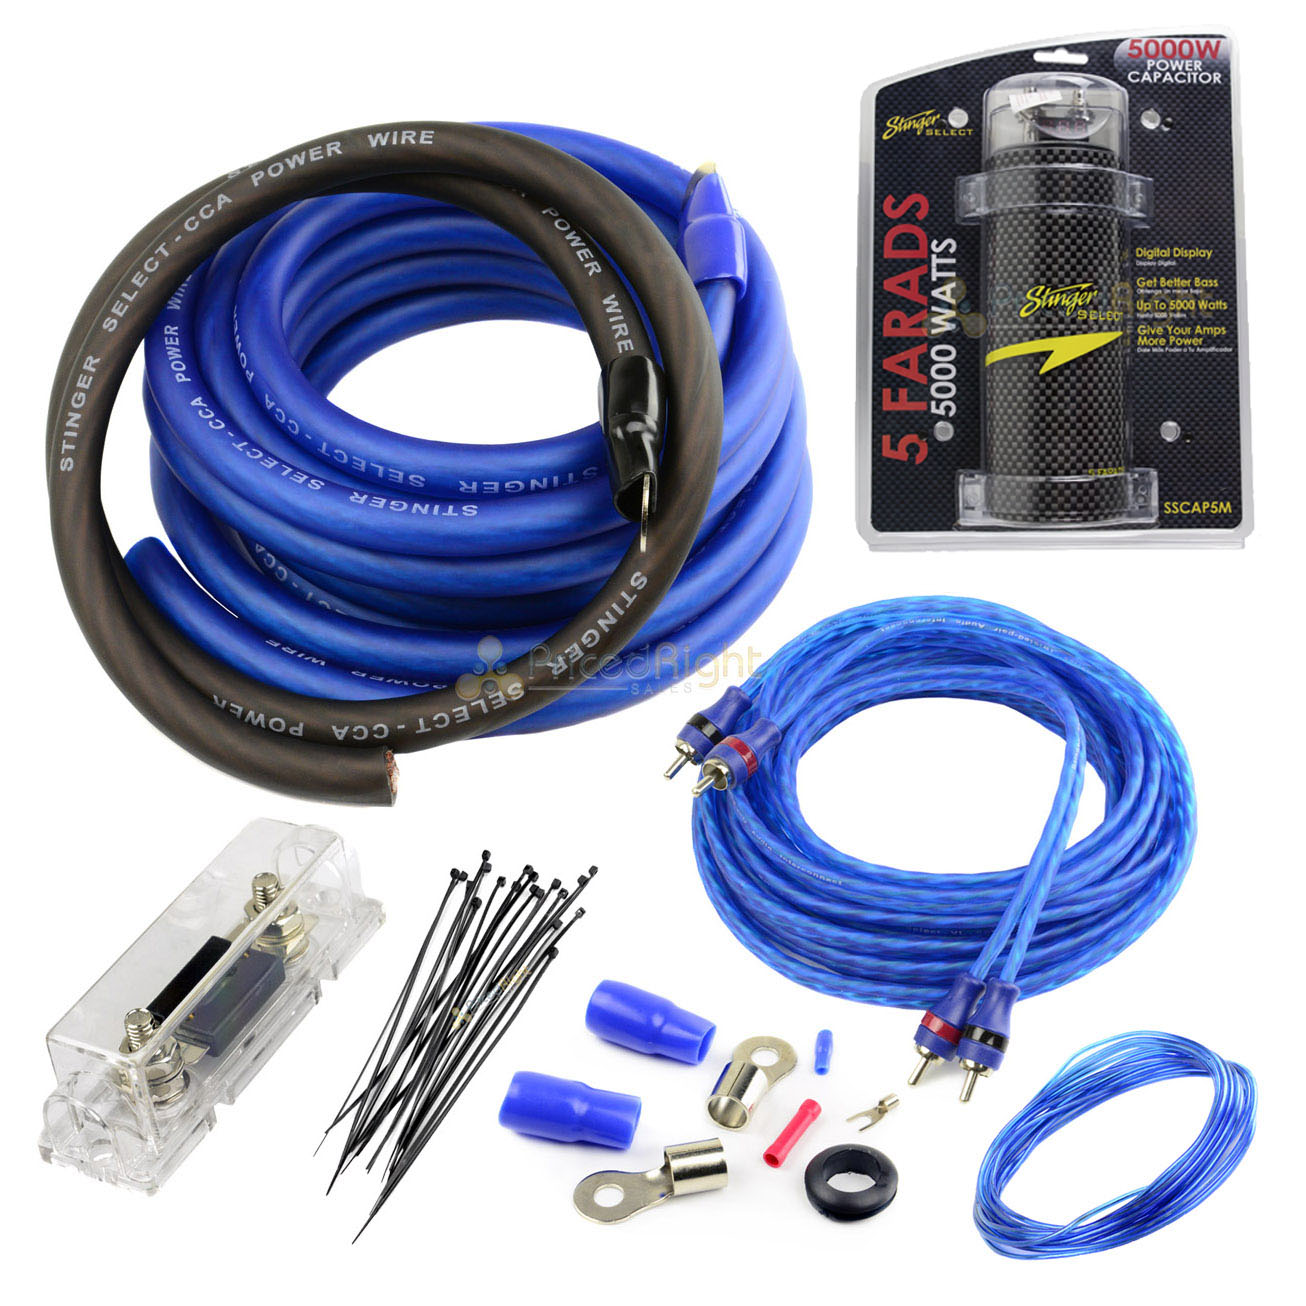 details about stinger true 0 gauge amp kit with 5 farad capacitor 1500  watts car audio kit set